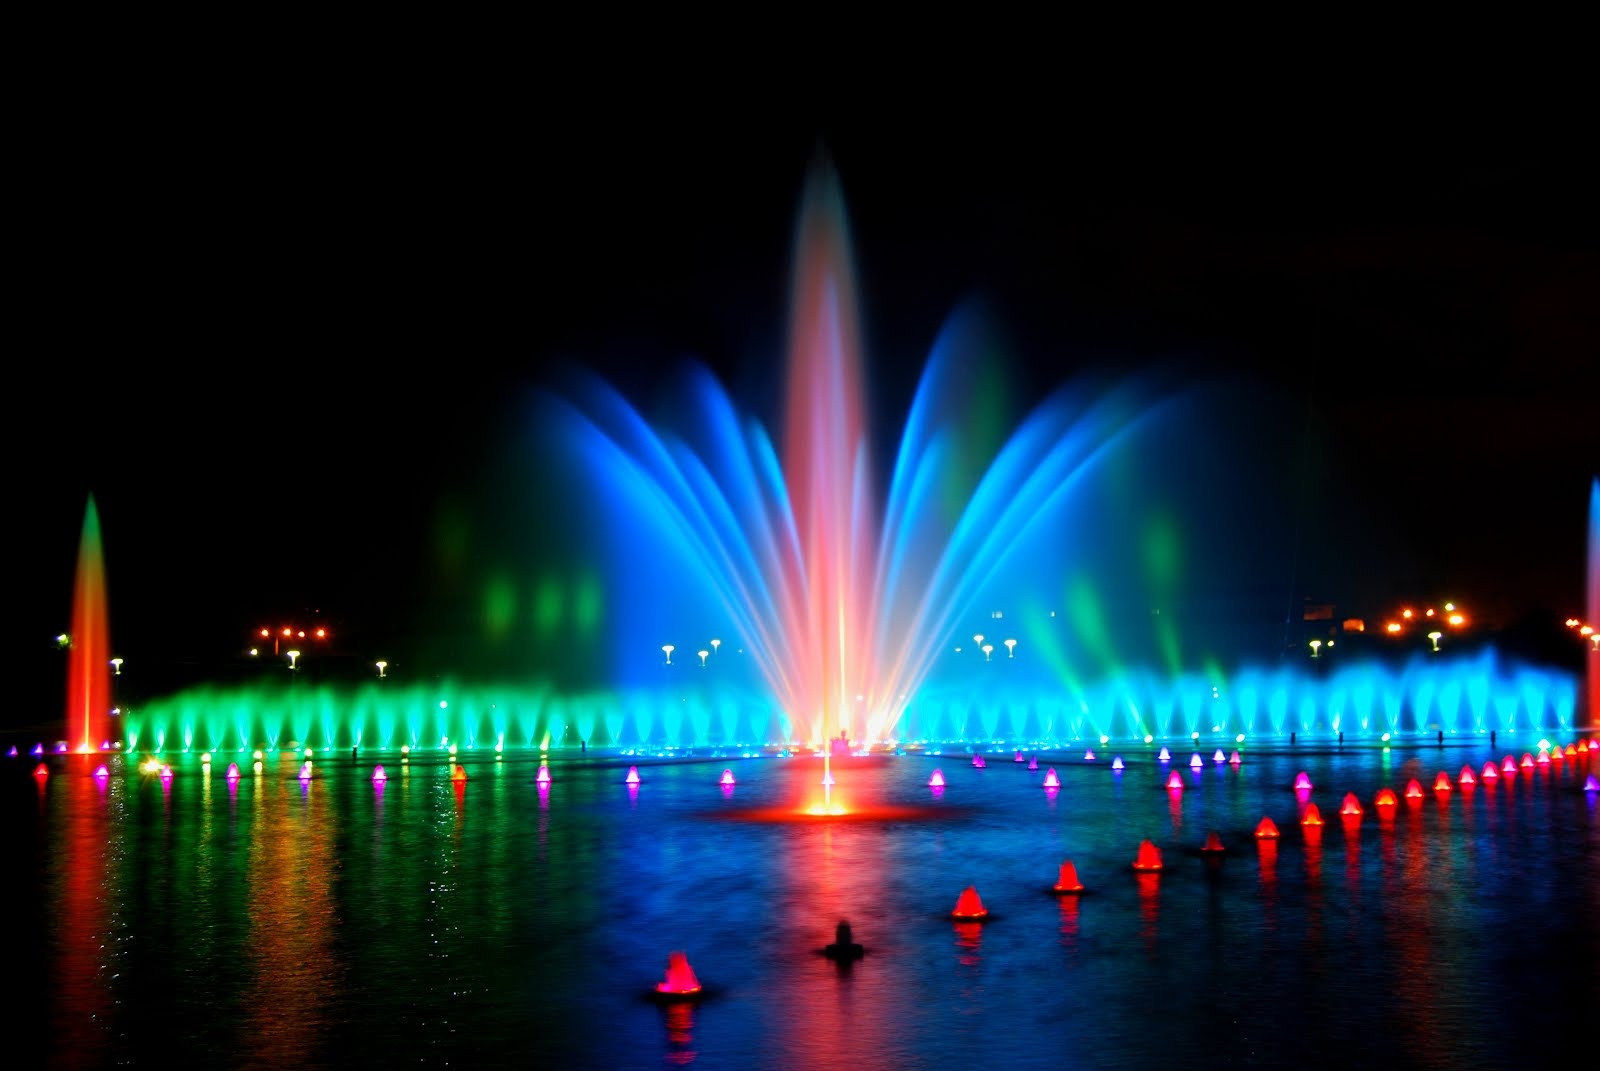 The Musical Wrocław Fountain